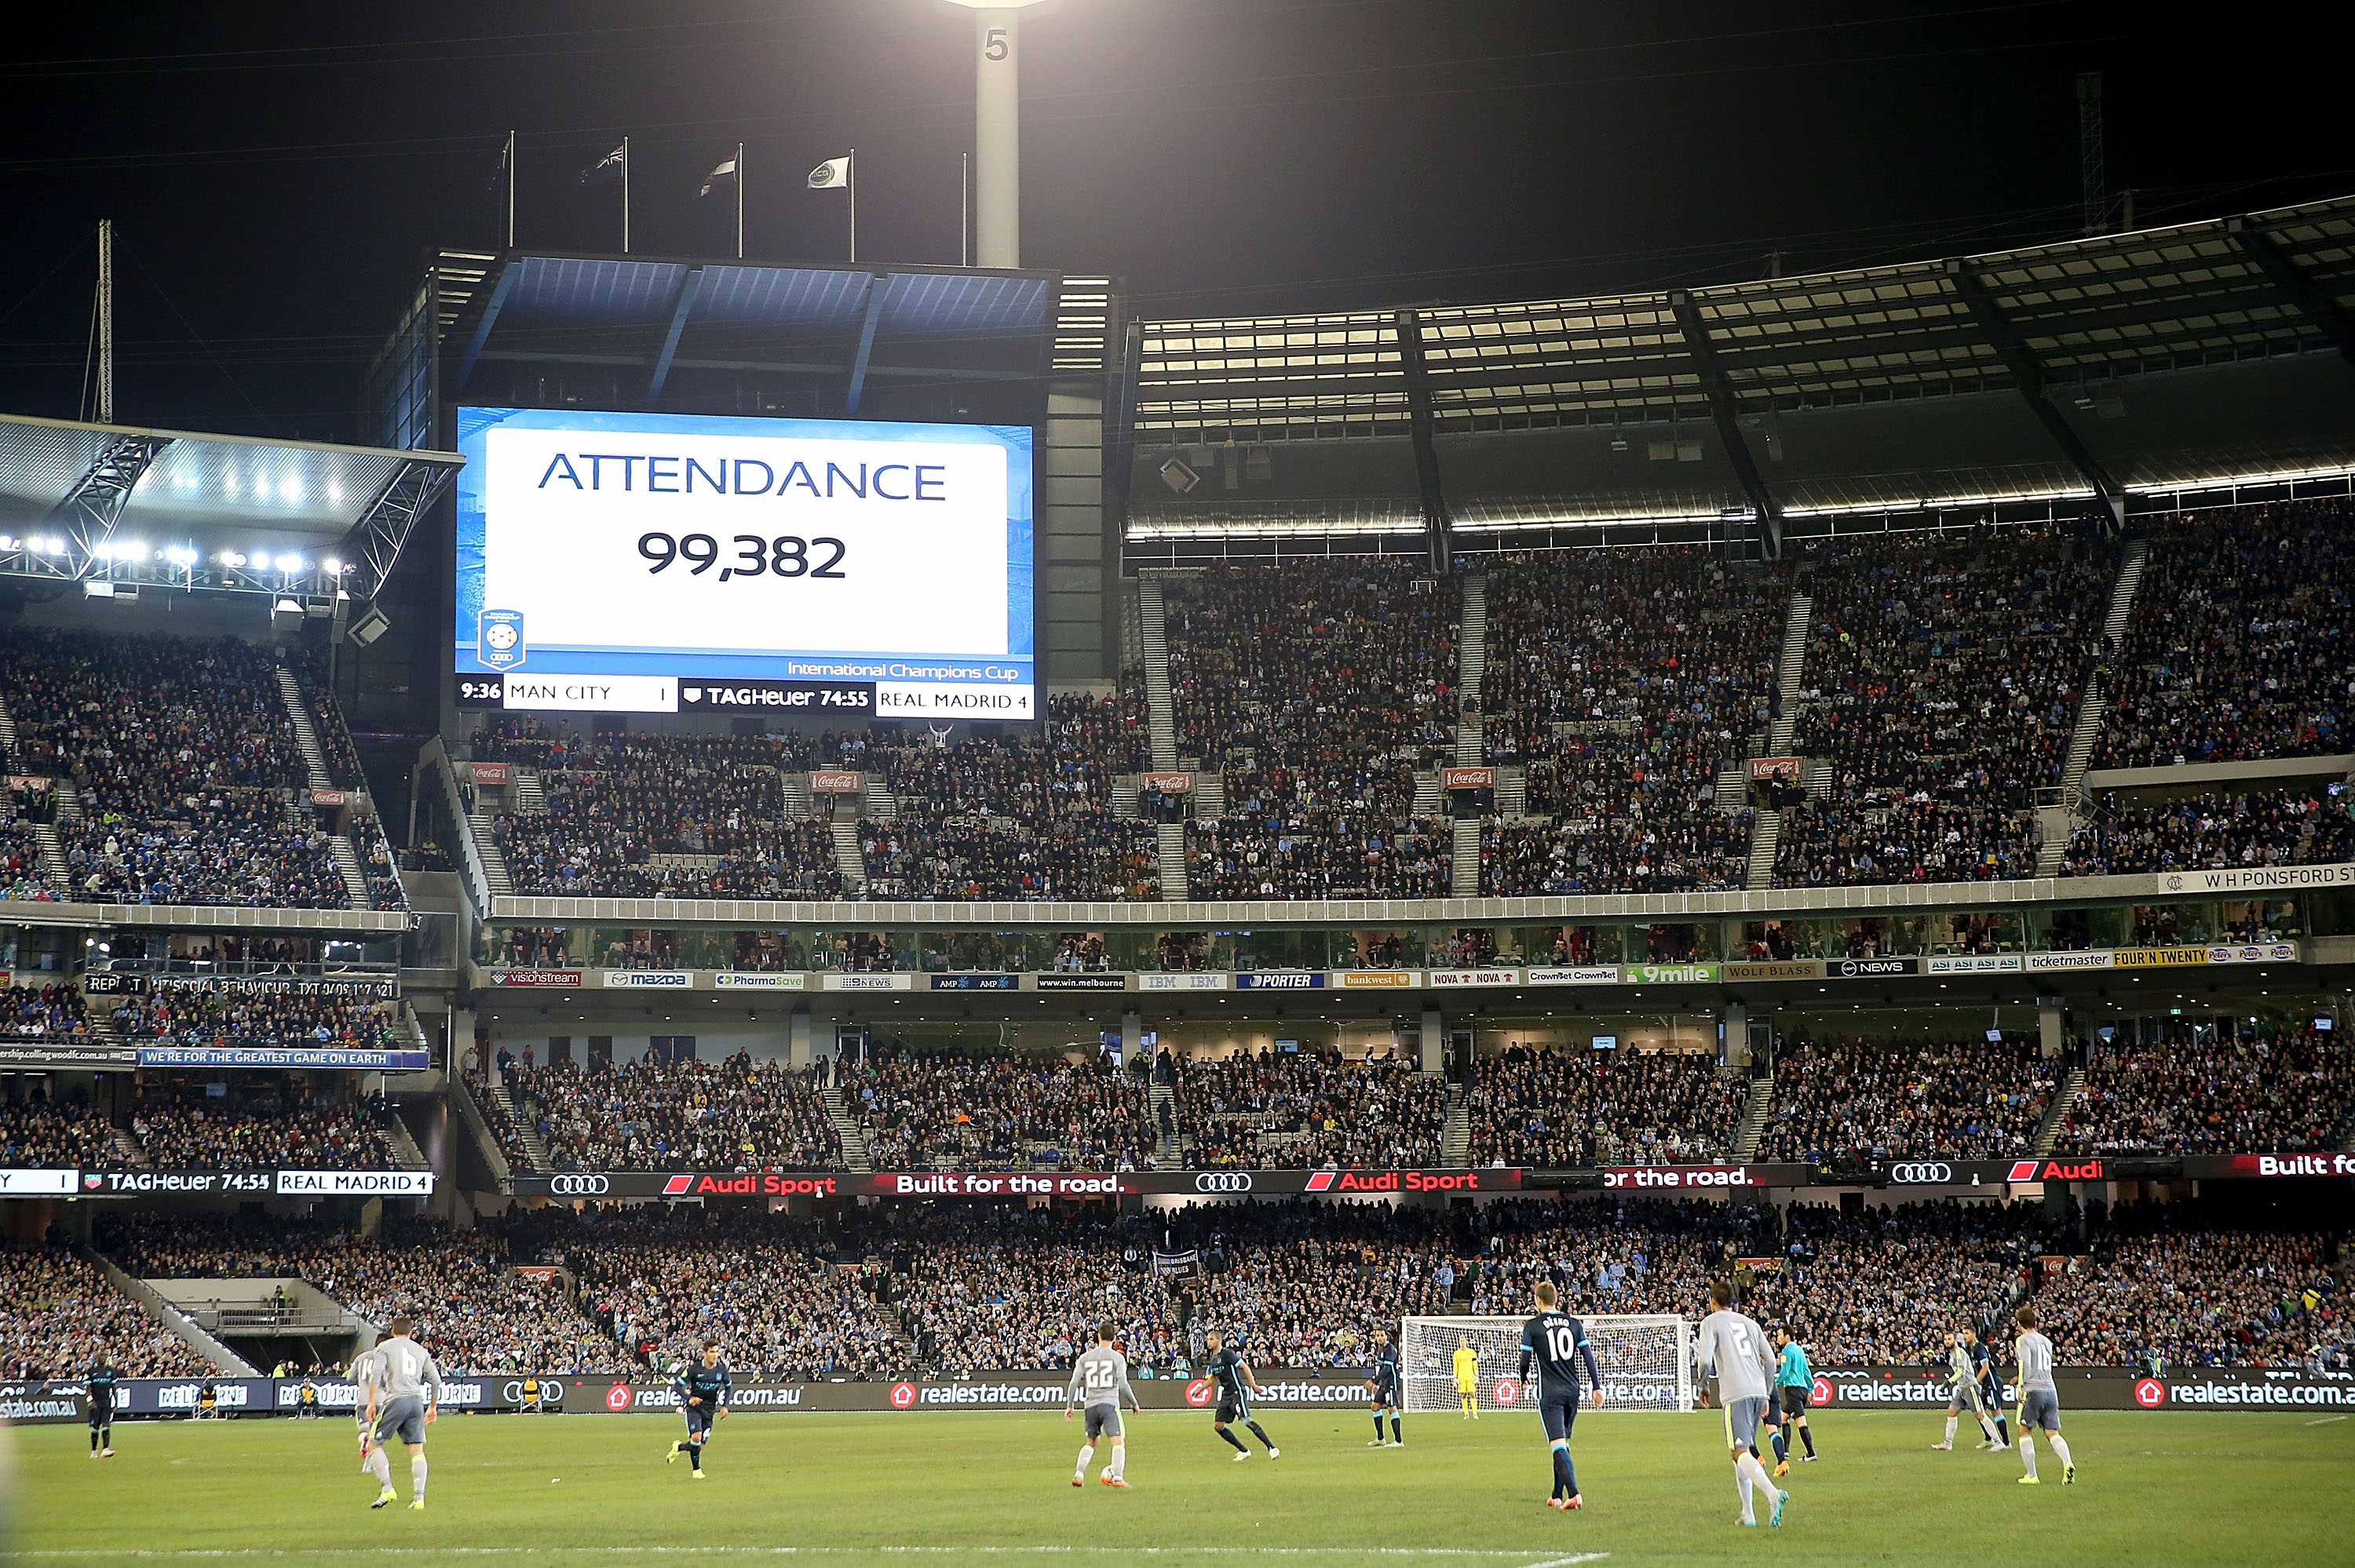 MCG Real Madrid Manchester City 24072015